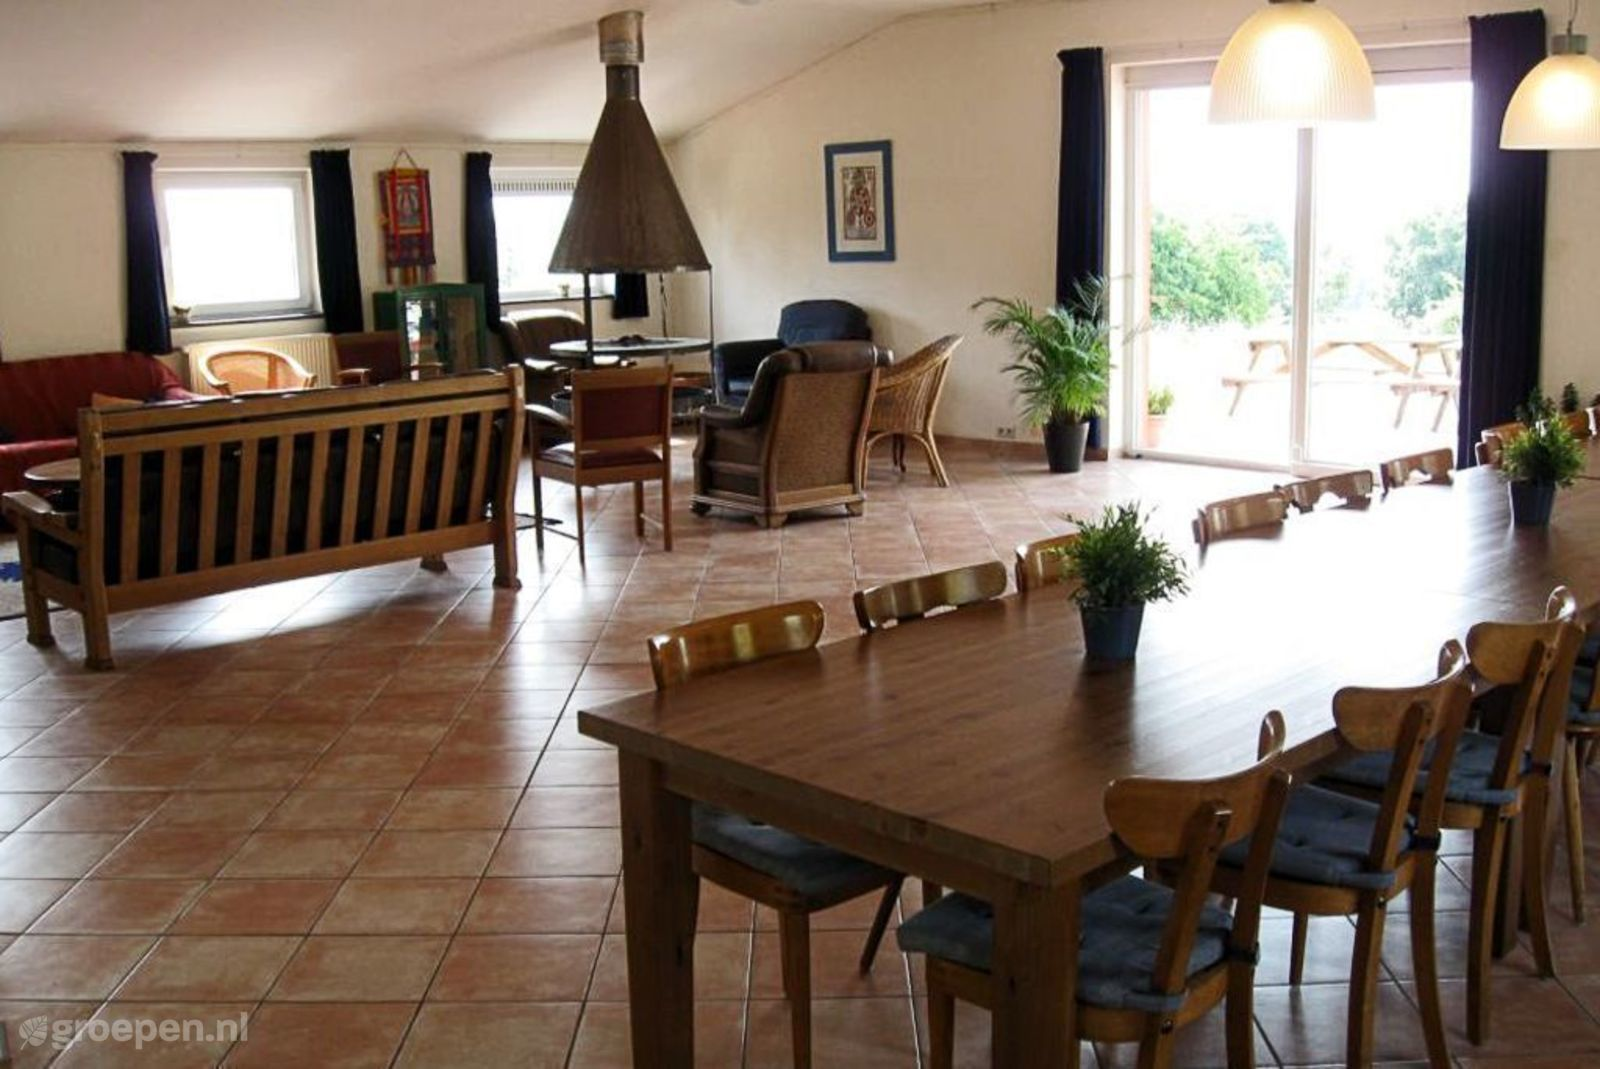 Group accommodation Medendorf